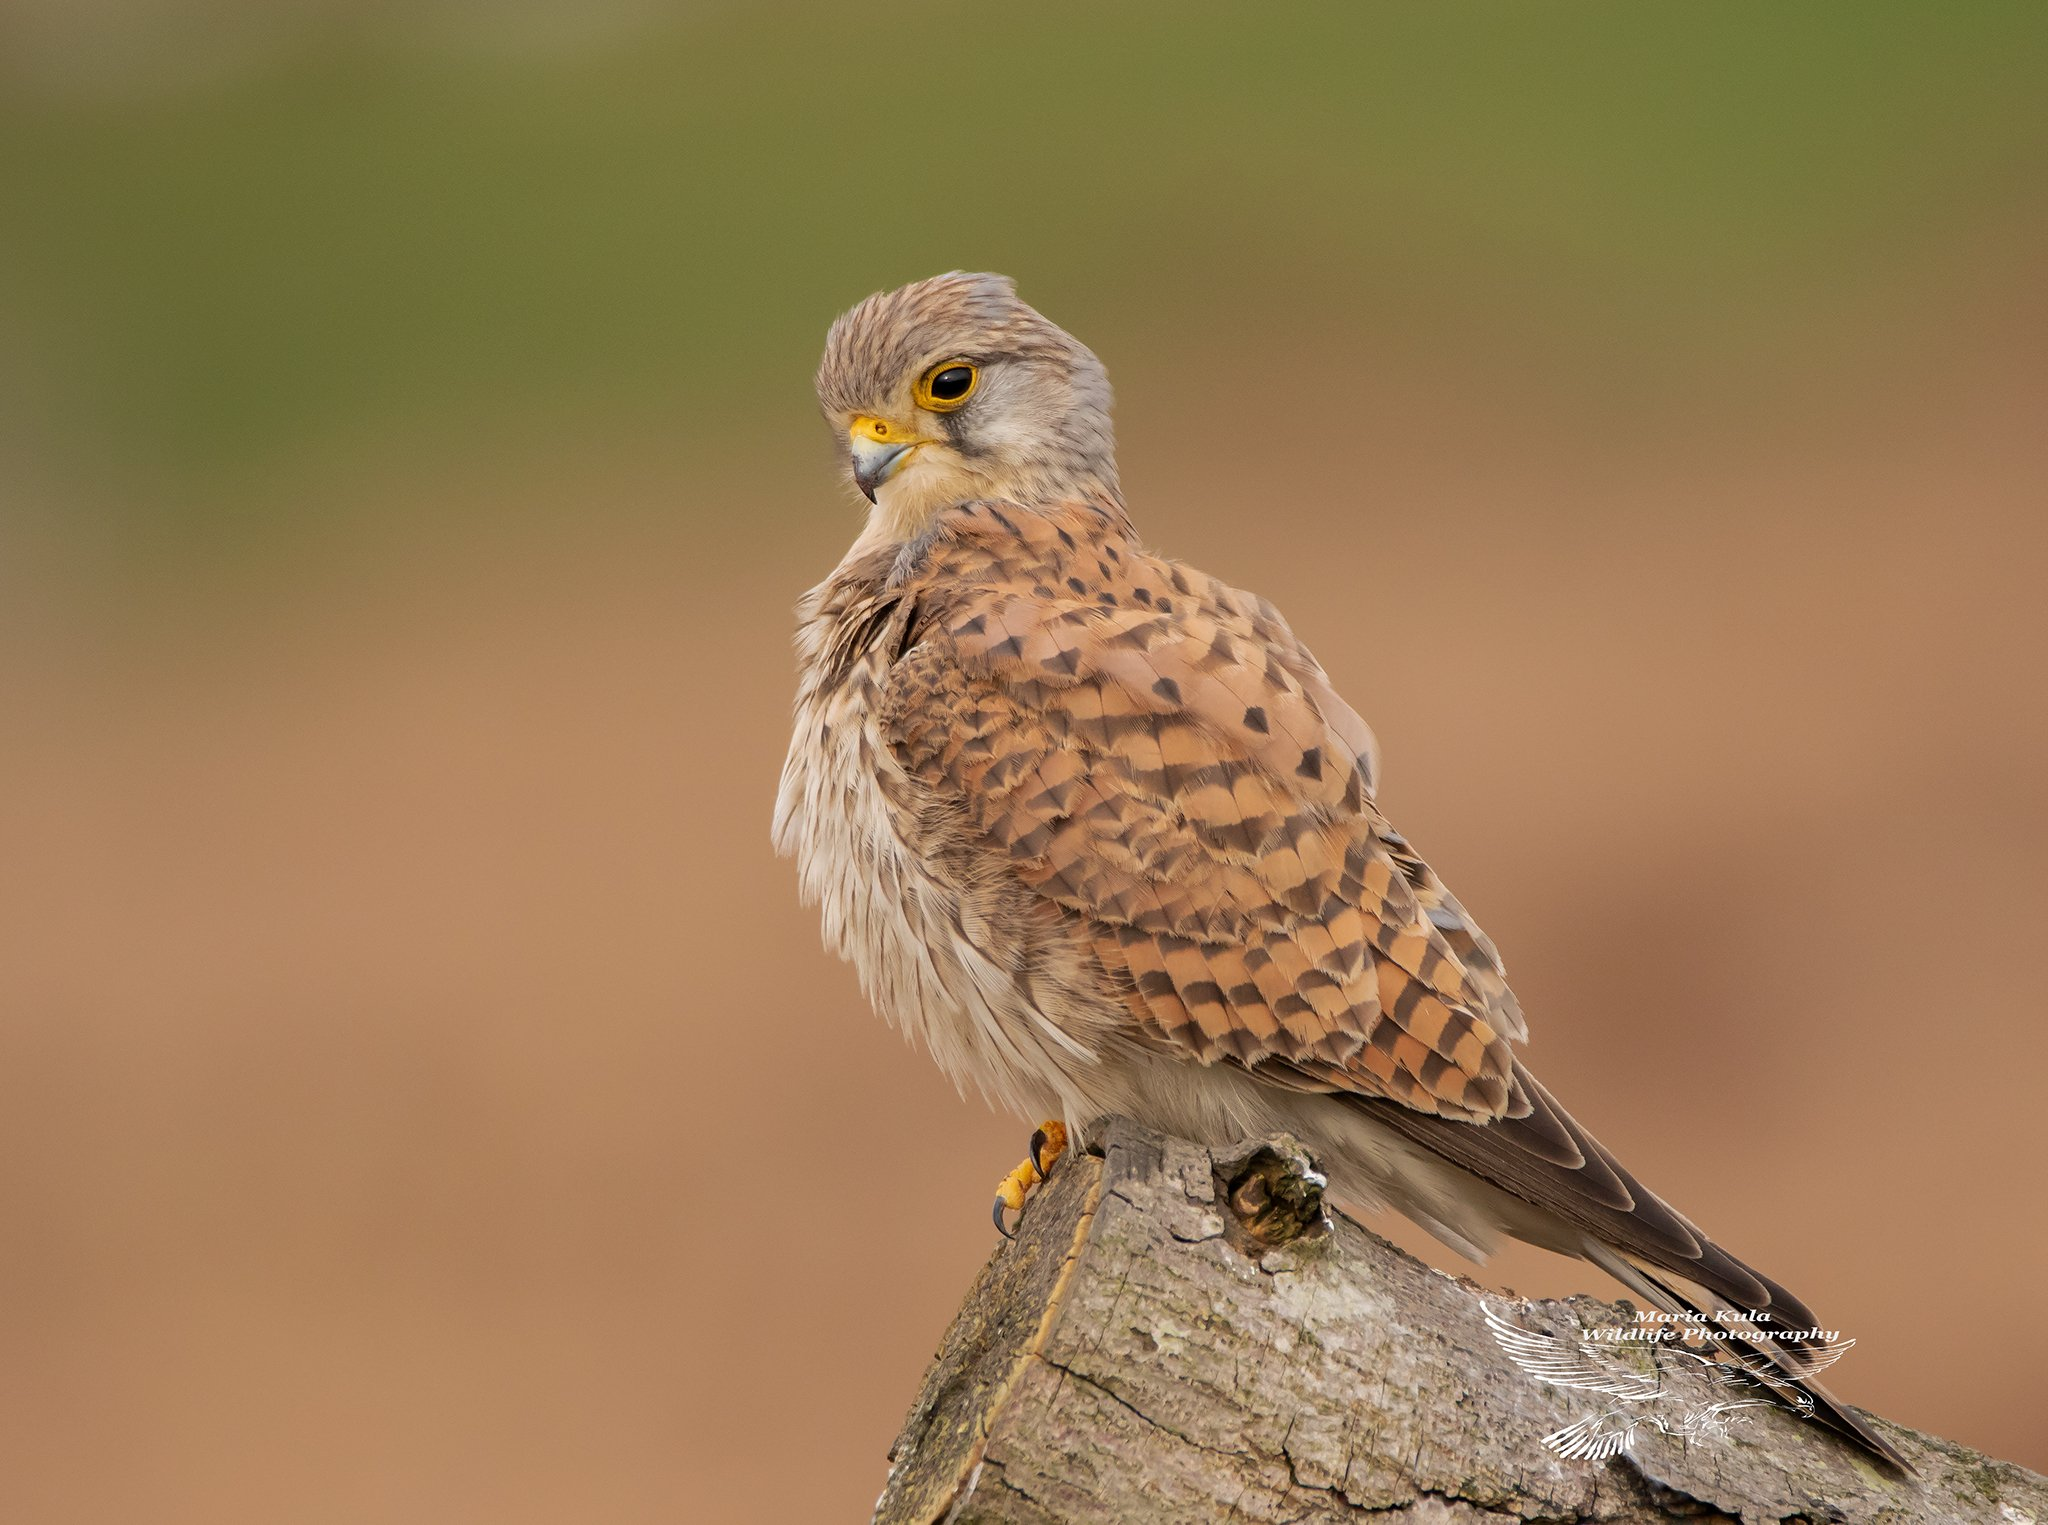 kesstrel, birds, birds of prey, nature, wildlife, woods, land, MARIA KULA